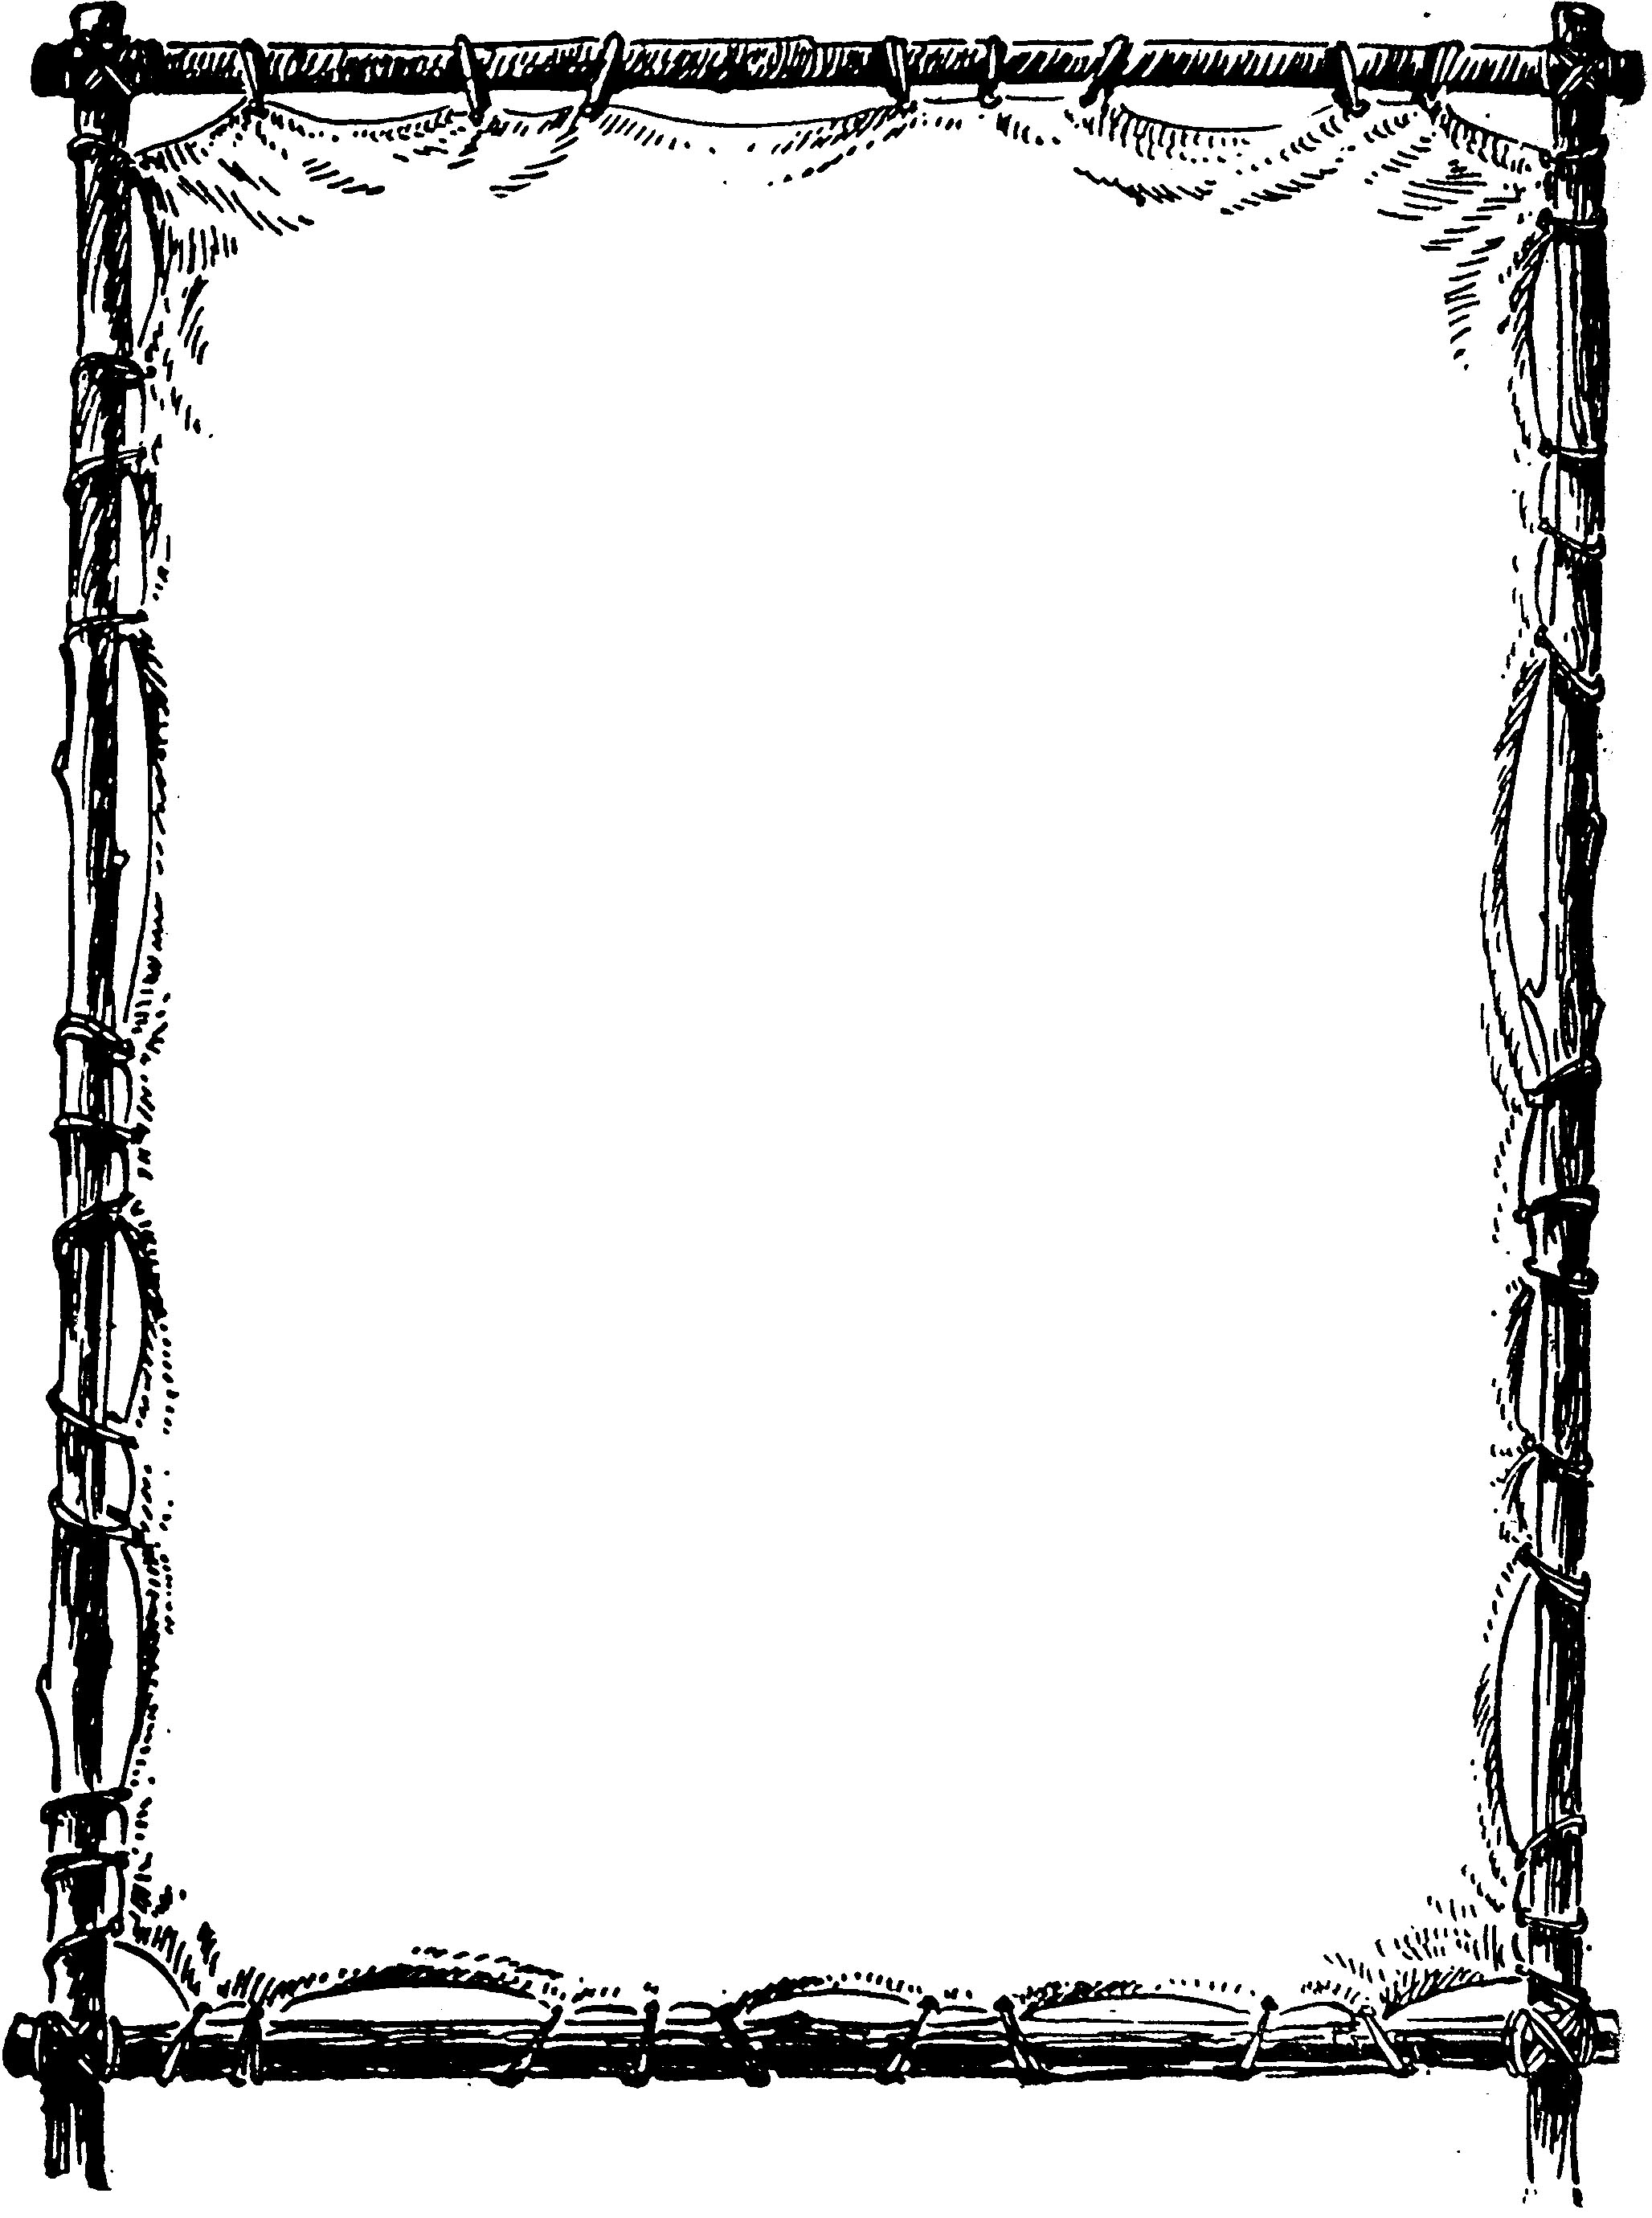 Elegant page borders clipart clipart royalty free library Page Border Clip Art & Page Border Clip Art Clip Art Images ... clipart royalty free library